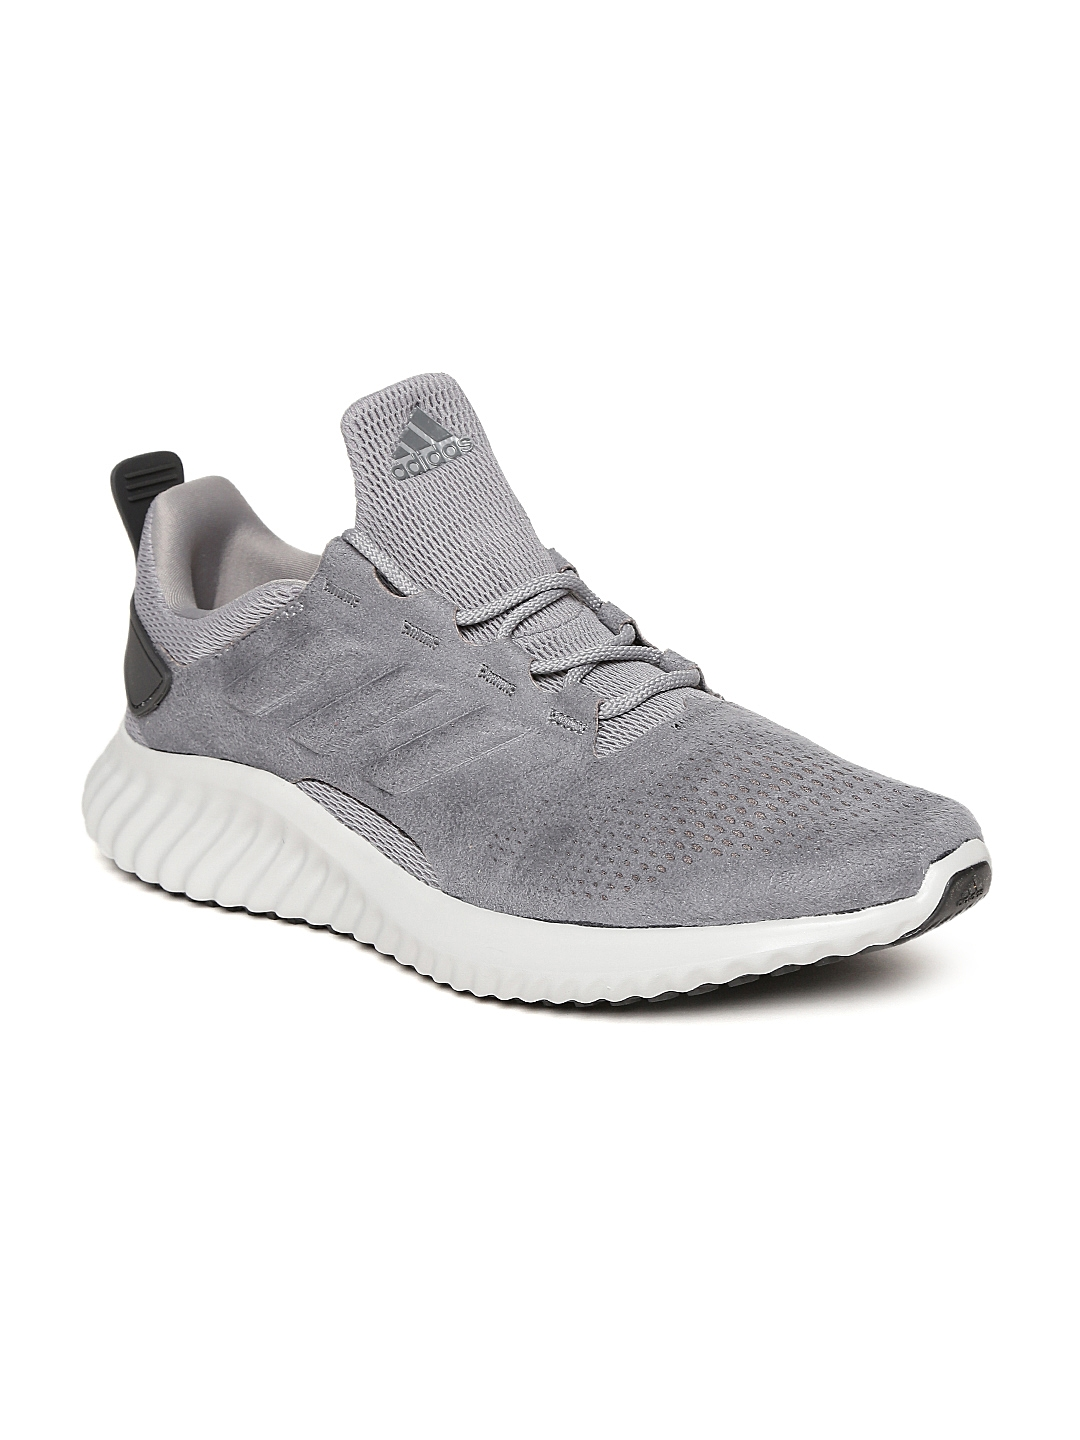 96daf7704 Buy ADIDAS Men Grey Alphabounce CR Suede Running Shoes - Sports ...